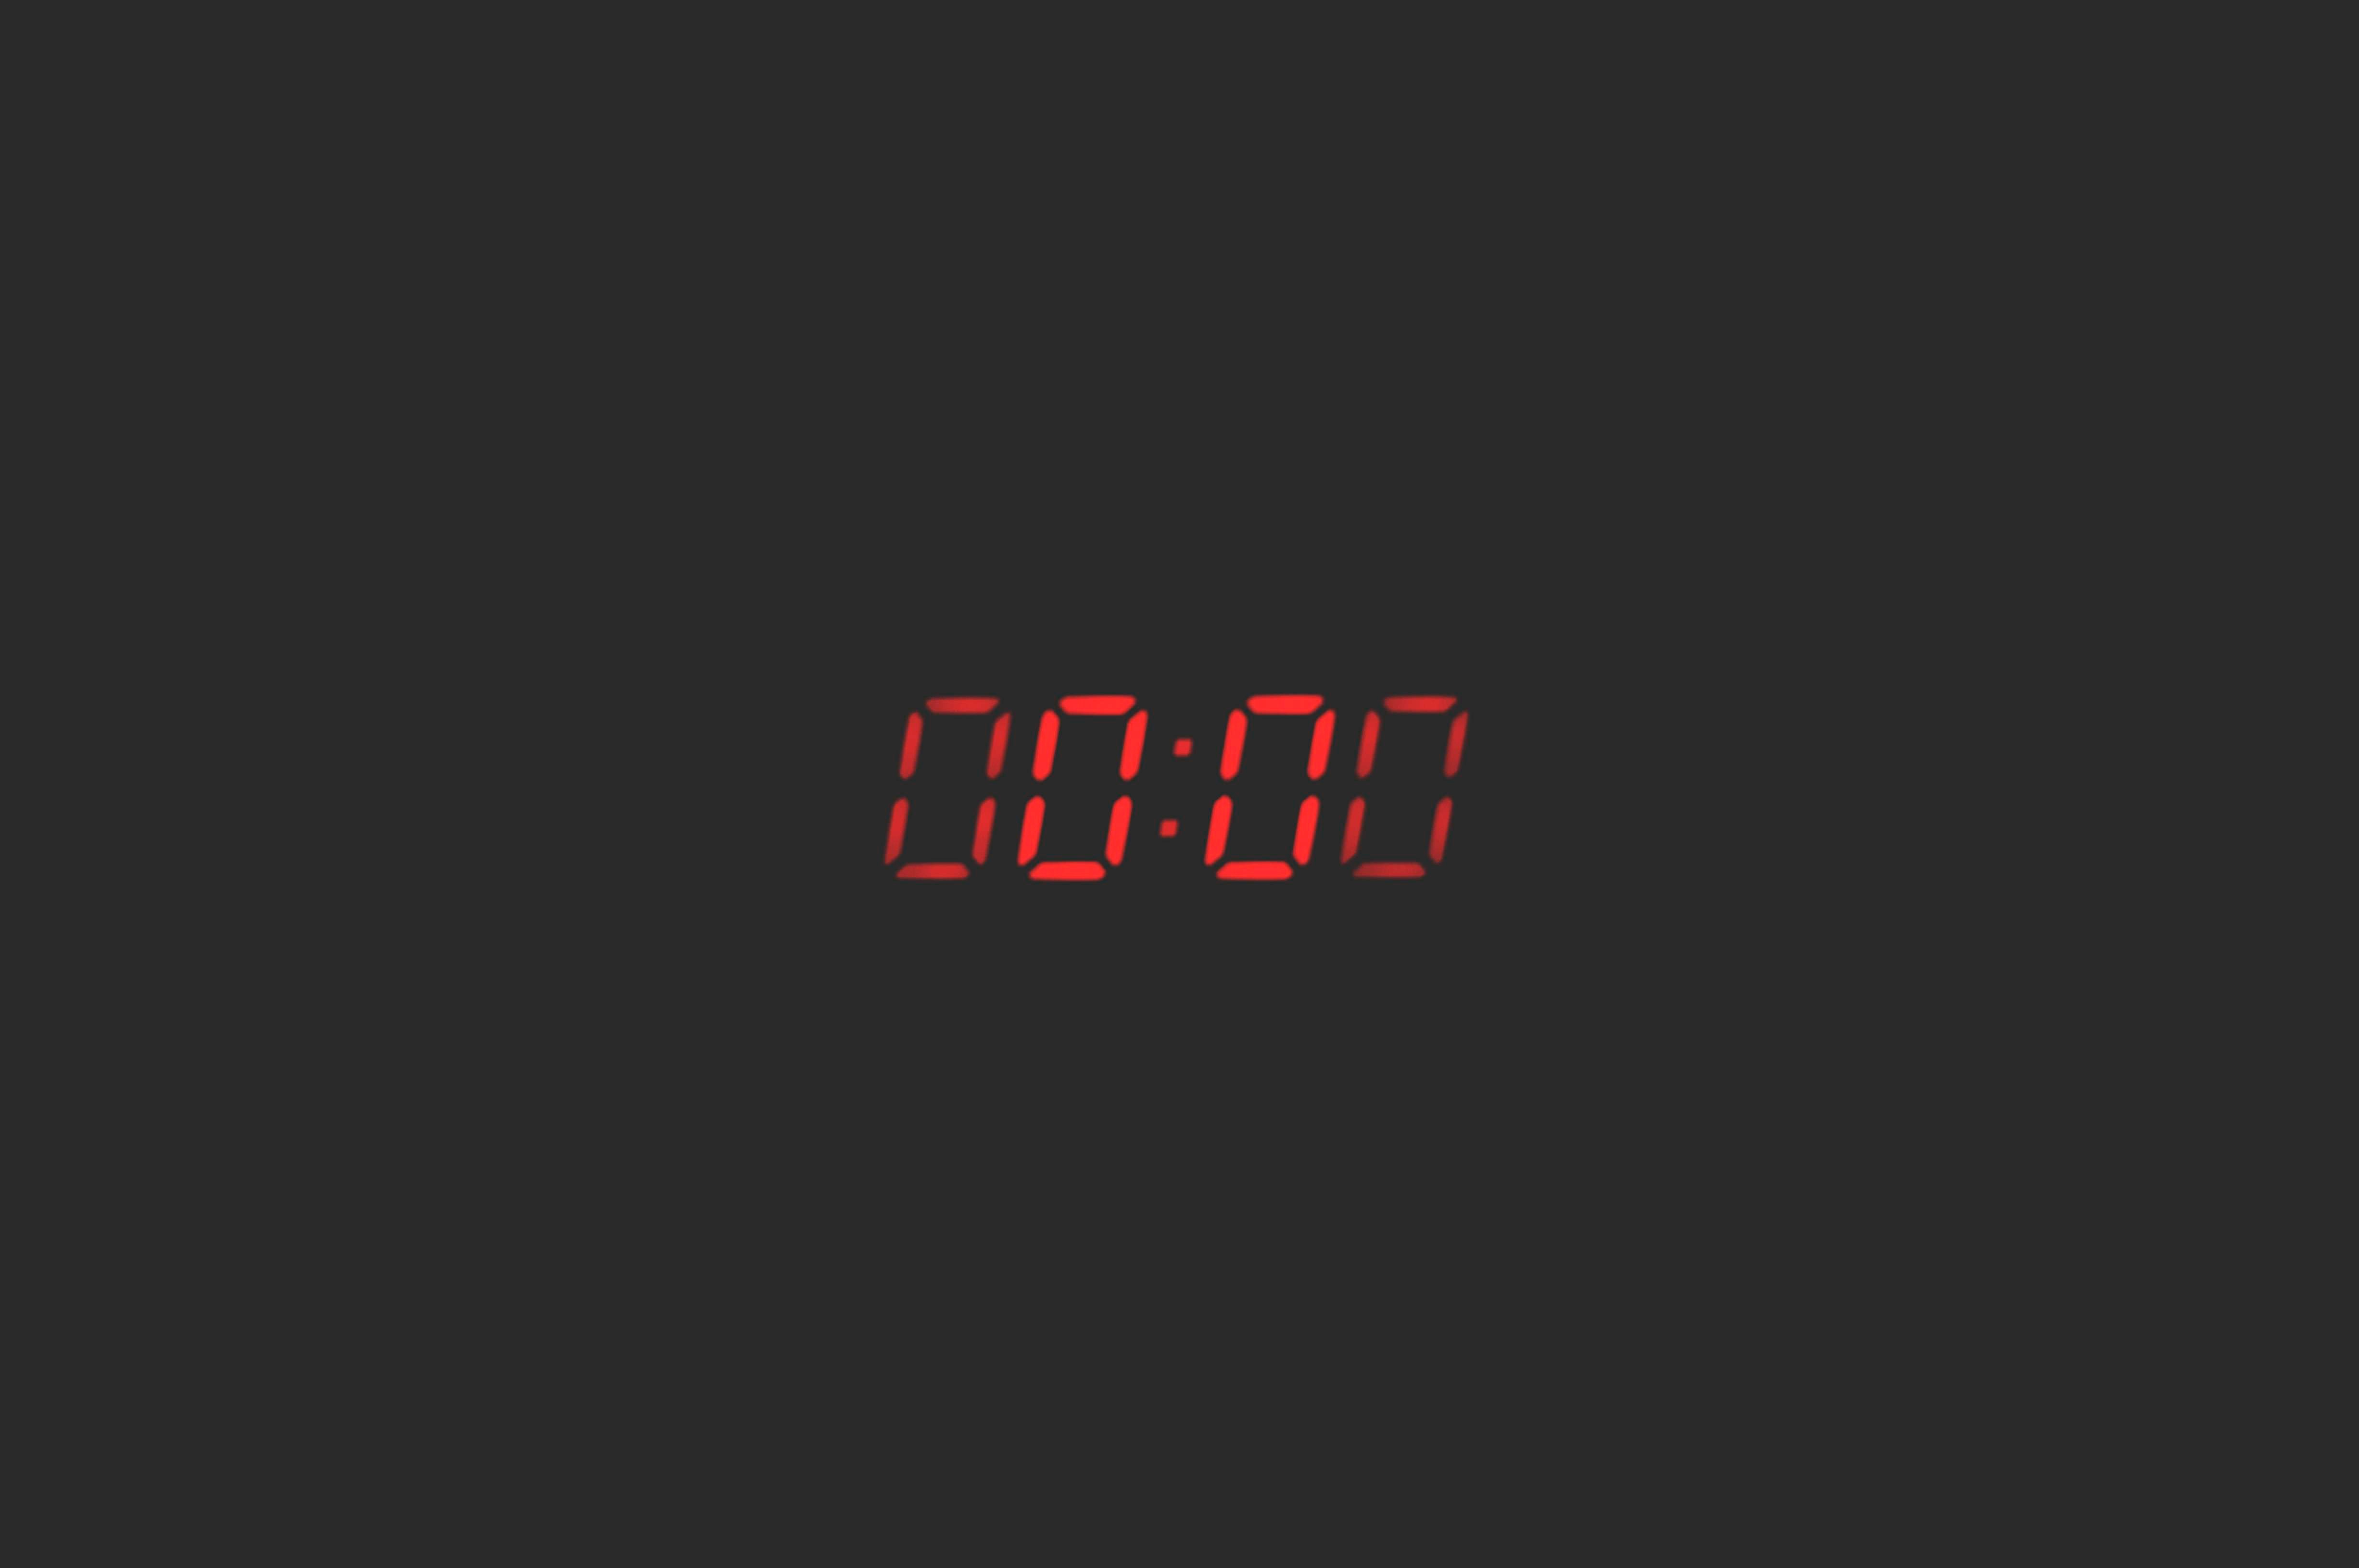 4k-wallpaper-clock-countdown-1447235